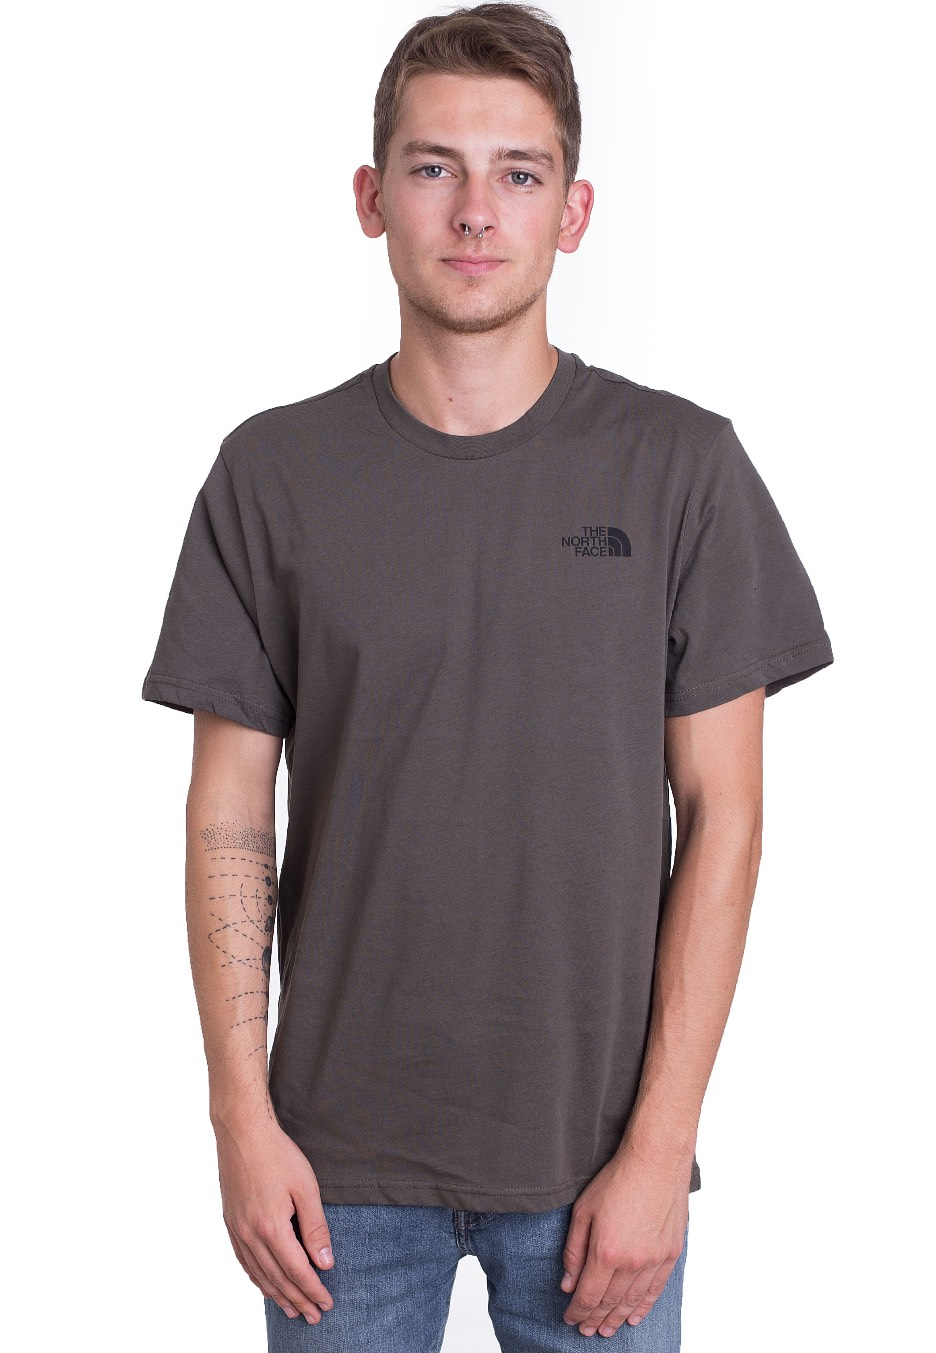 The North Face - Simple Dome NWTPE Green TNF Black - T-Shirt - Streetwear  Shop - Impericon.com AU c38a60286